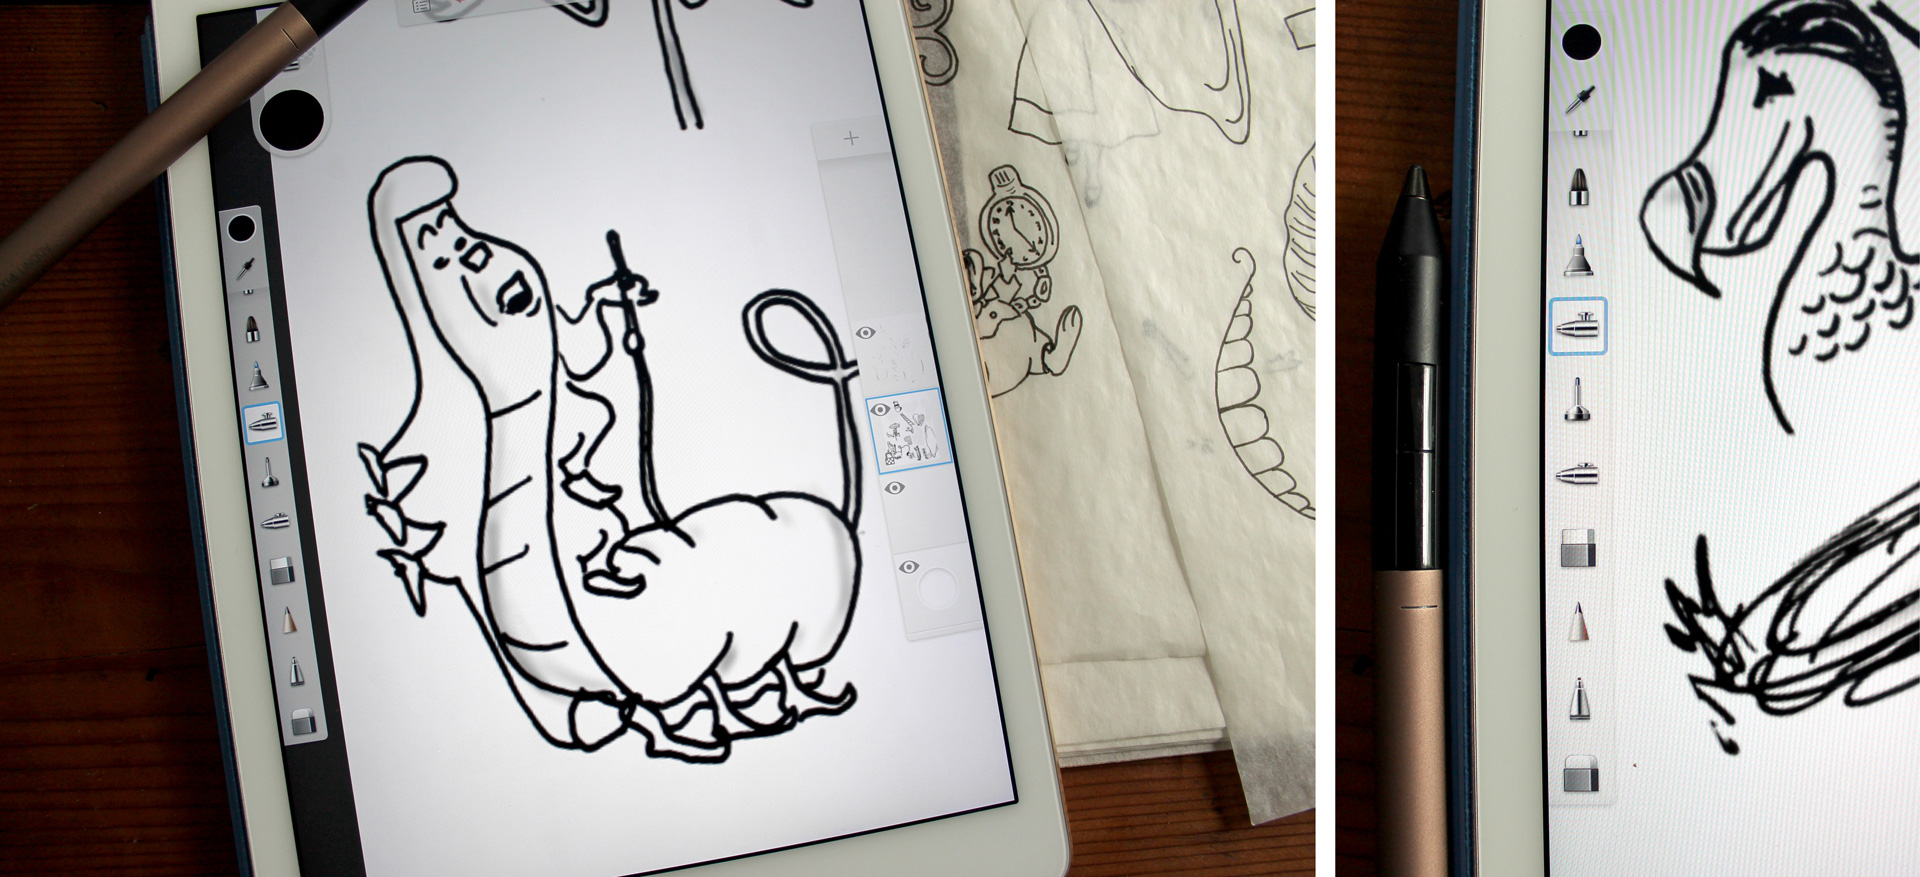 Two photos of vectorized Alice in Wonderland character sketches